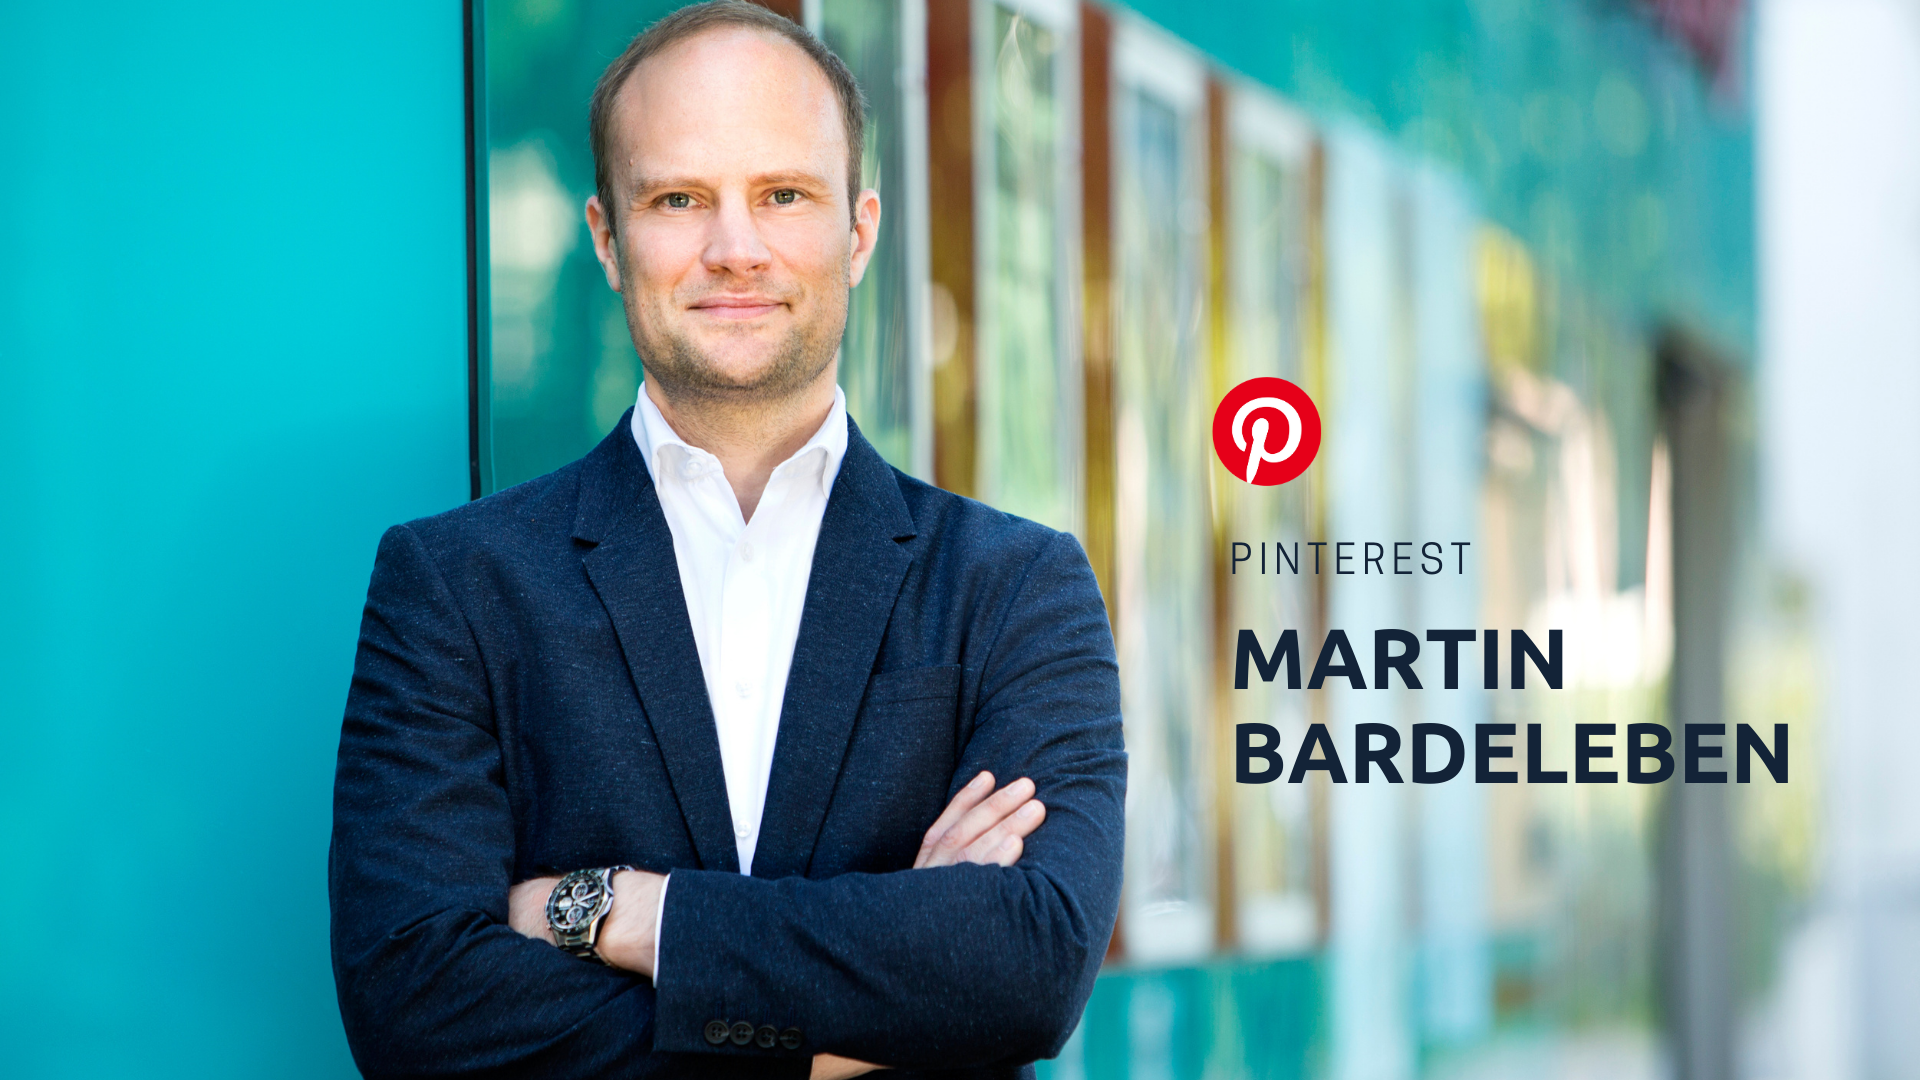 Martin Bardeleben, Head of Partnerships für Consumer Goods bei Pinterest